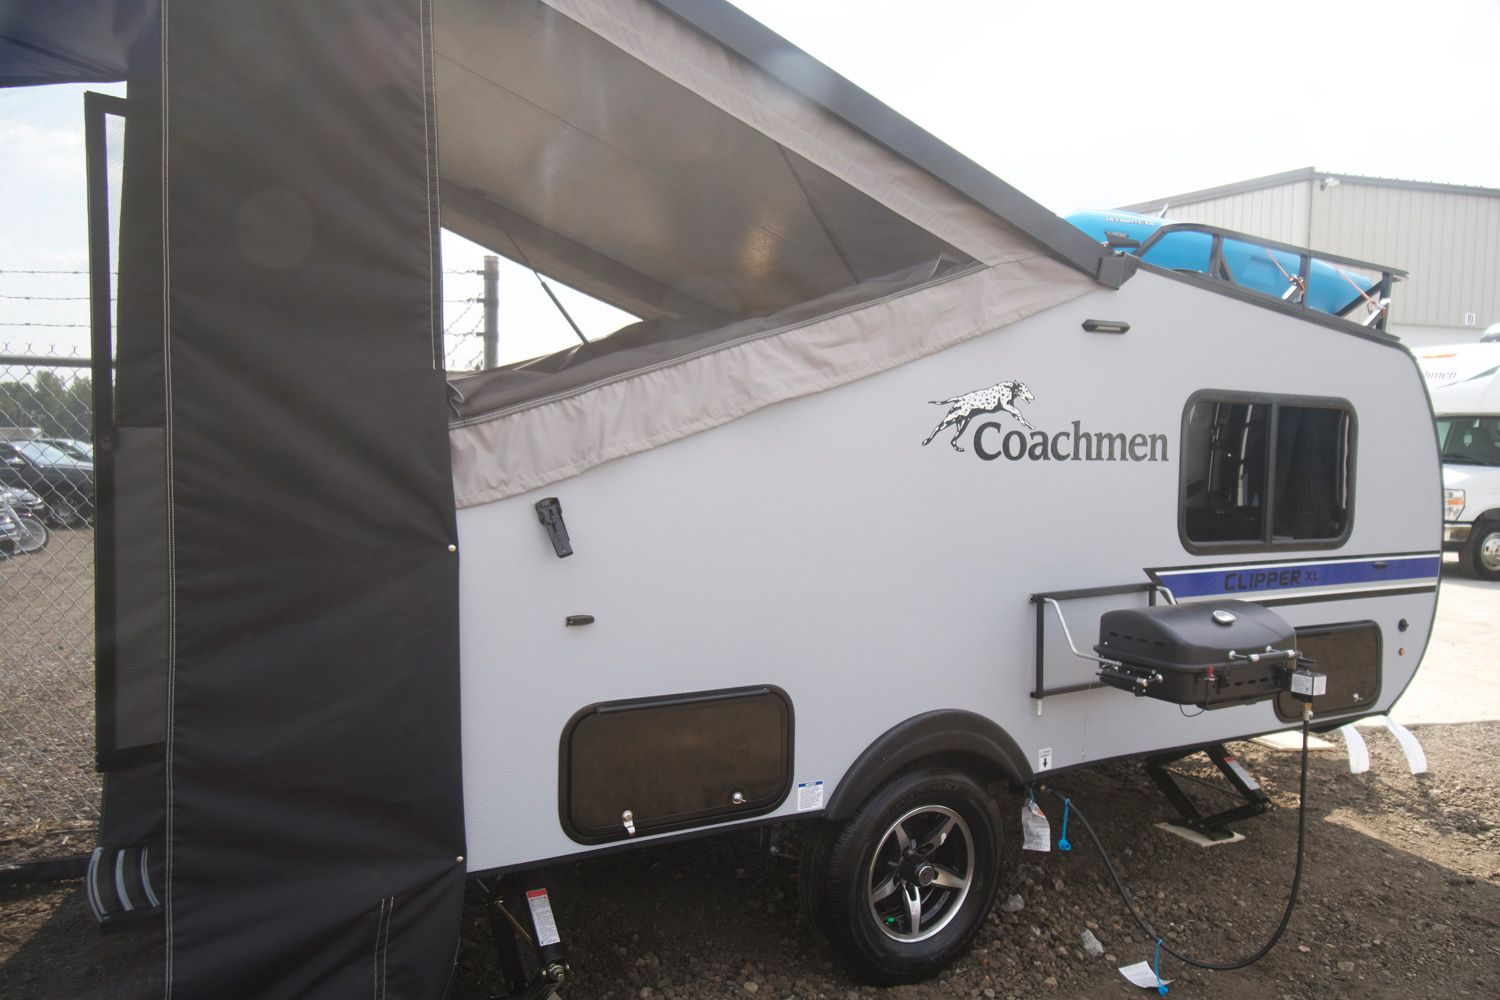 Clipper 12.0TD Pop Up Campers by Coachmen RV Coachmen rv